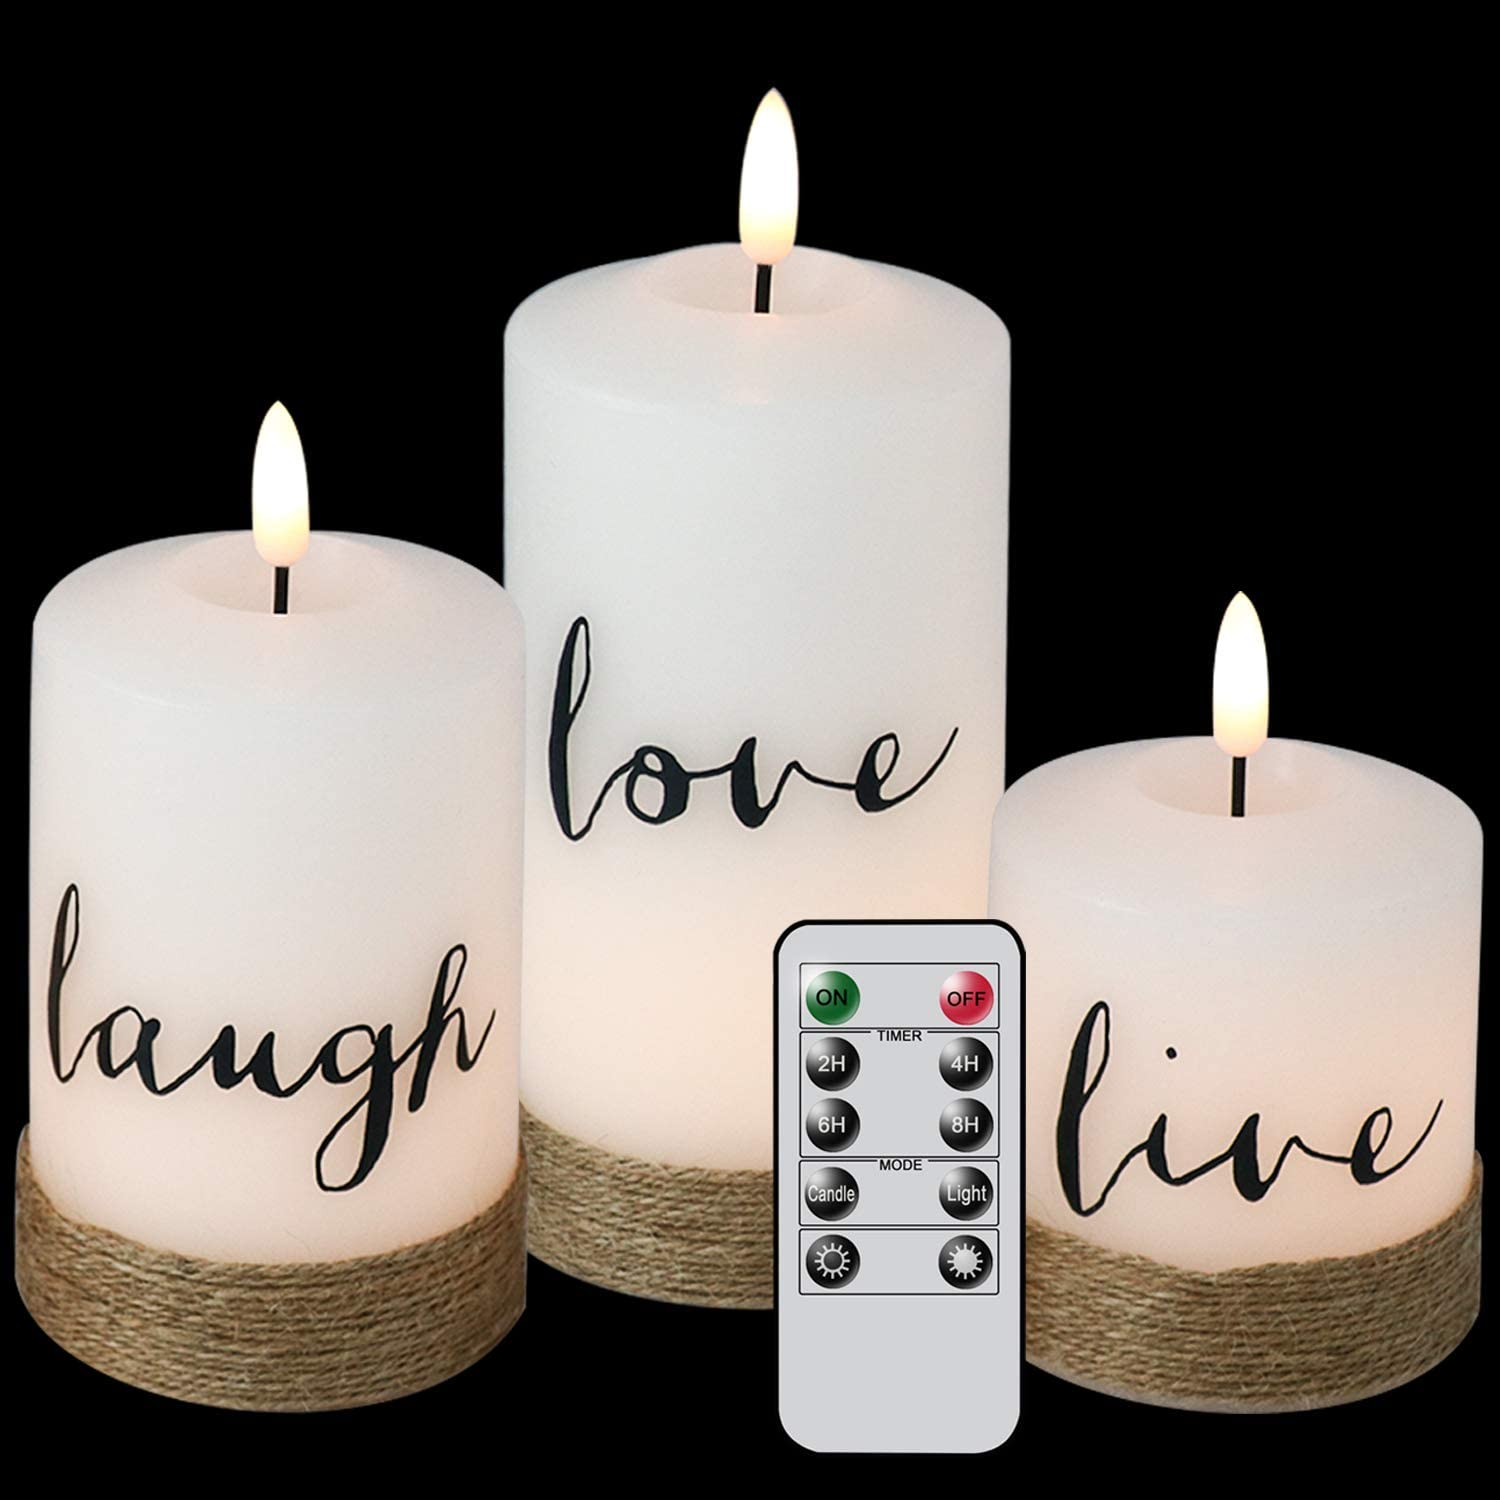 DRomance White Flickering Flameless Decal Candles with 6 Hour Timer, Set of 3 Battery Operated 3D Wick LED Pillar Candles Live Love Laugh Hemp Rope Christmas Decor Candles(3 x 4.7, 5.7, 6.7 Inches)